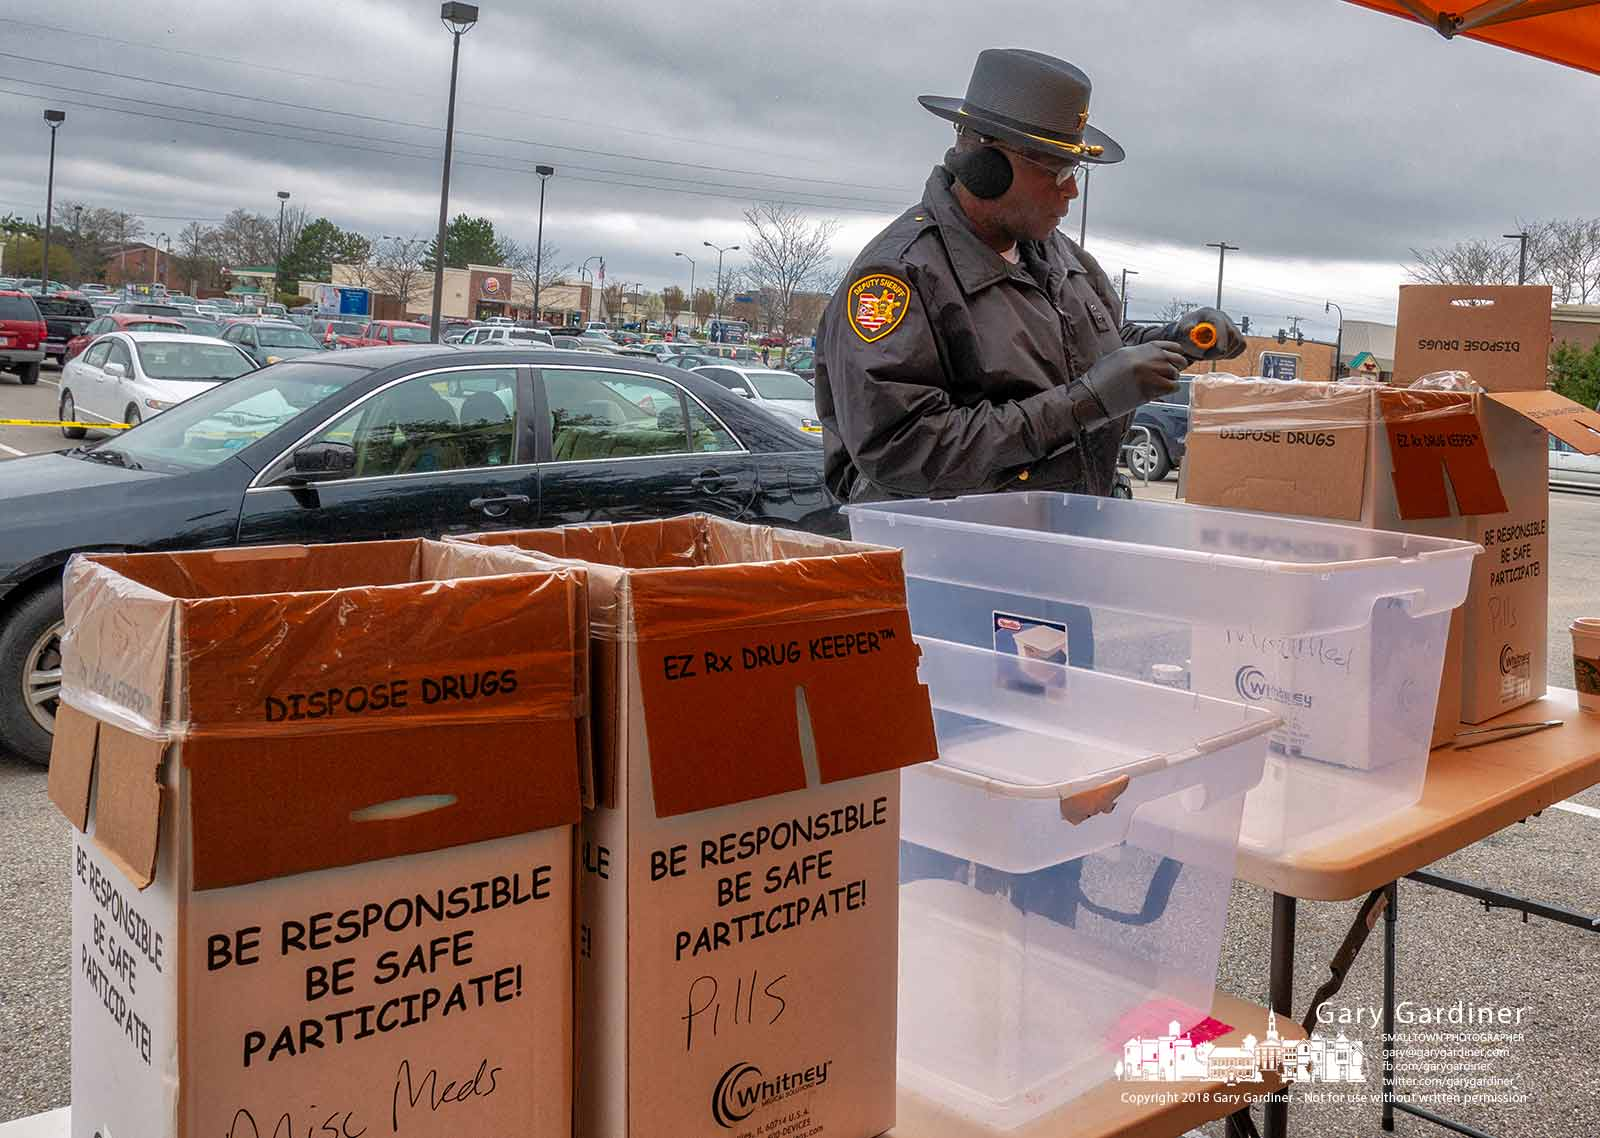 A Franklin County Deputy Sheriff sorts through bottles of drugs collected at a dropoff point in the Kroger parking lot as part of National Prescription Drug Take Back Day to dispose of prescription drugs. My Final Photo for April 28, 2018.